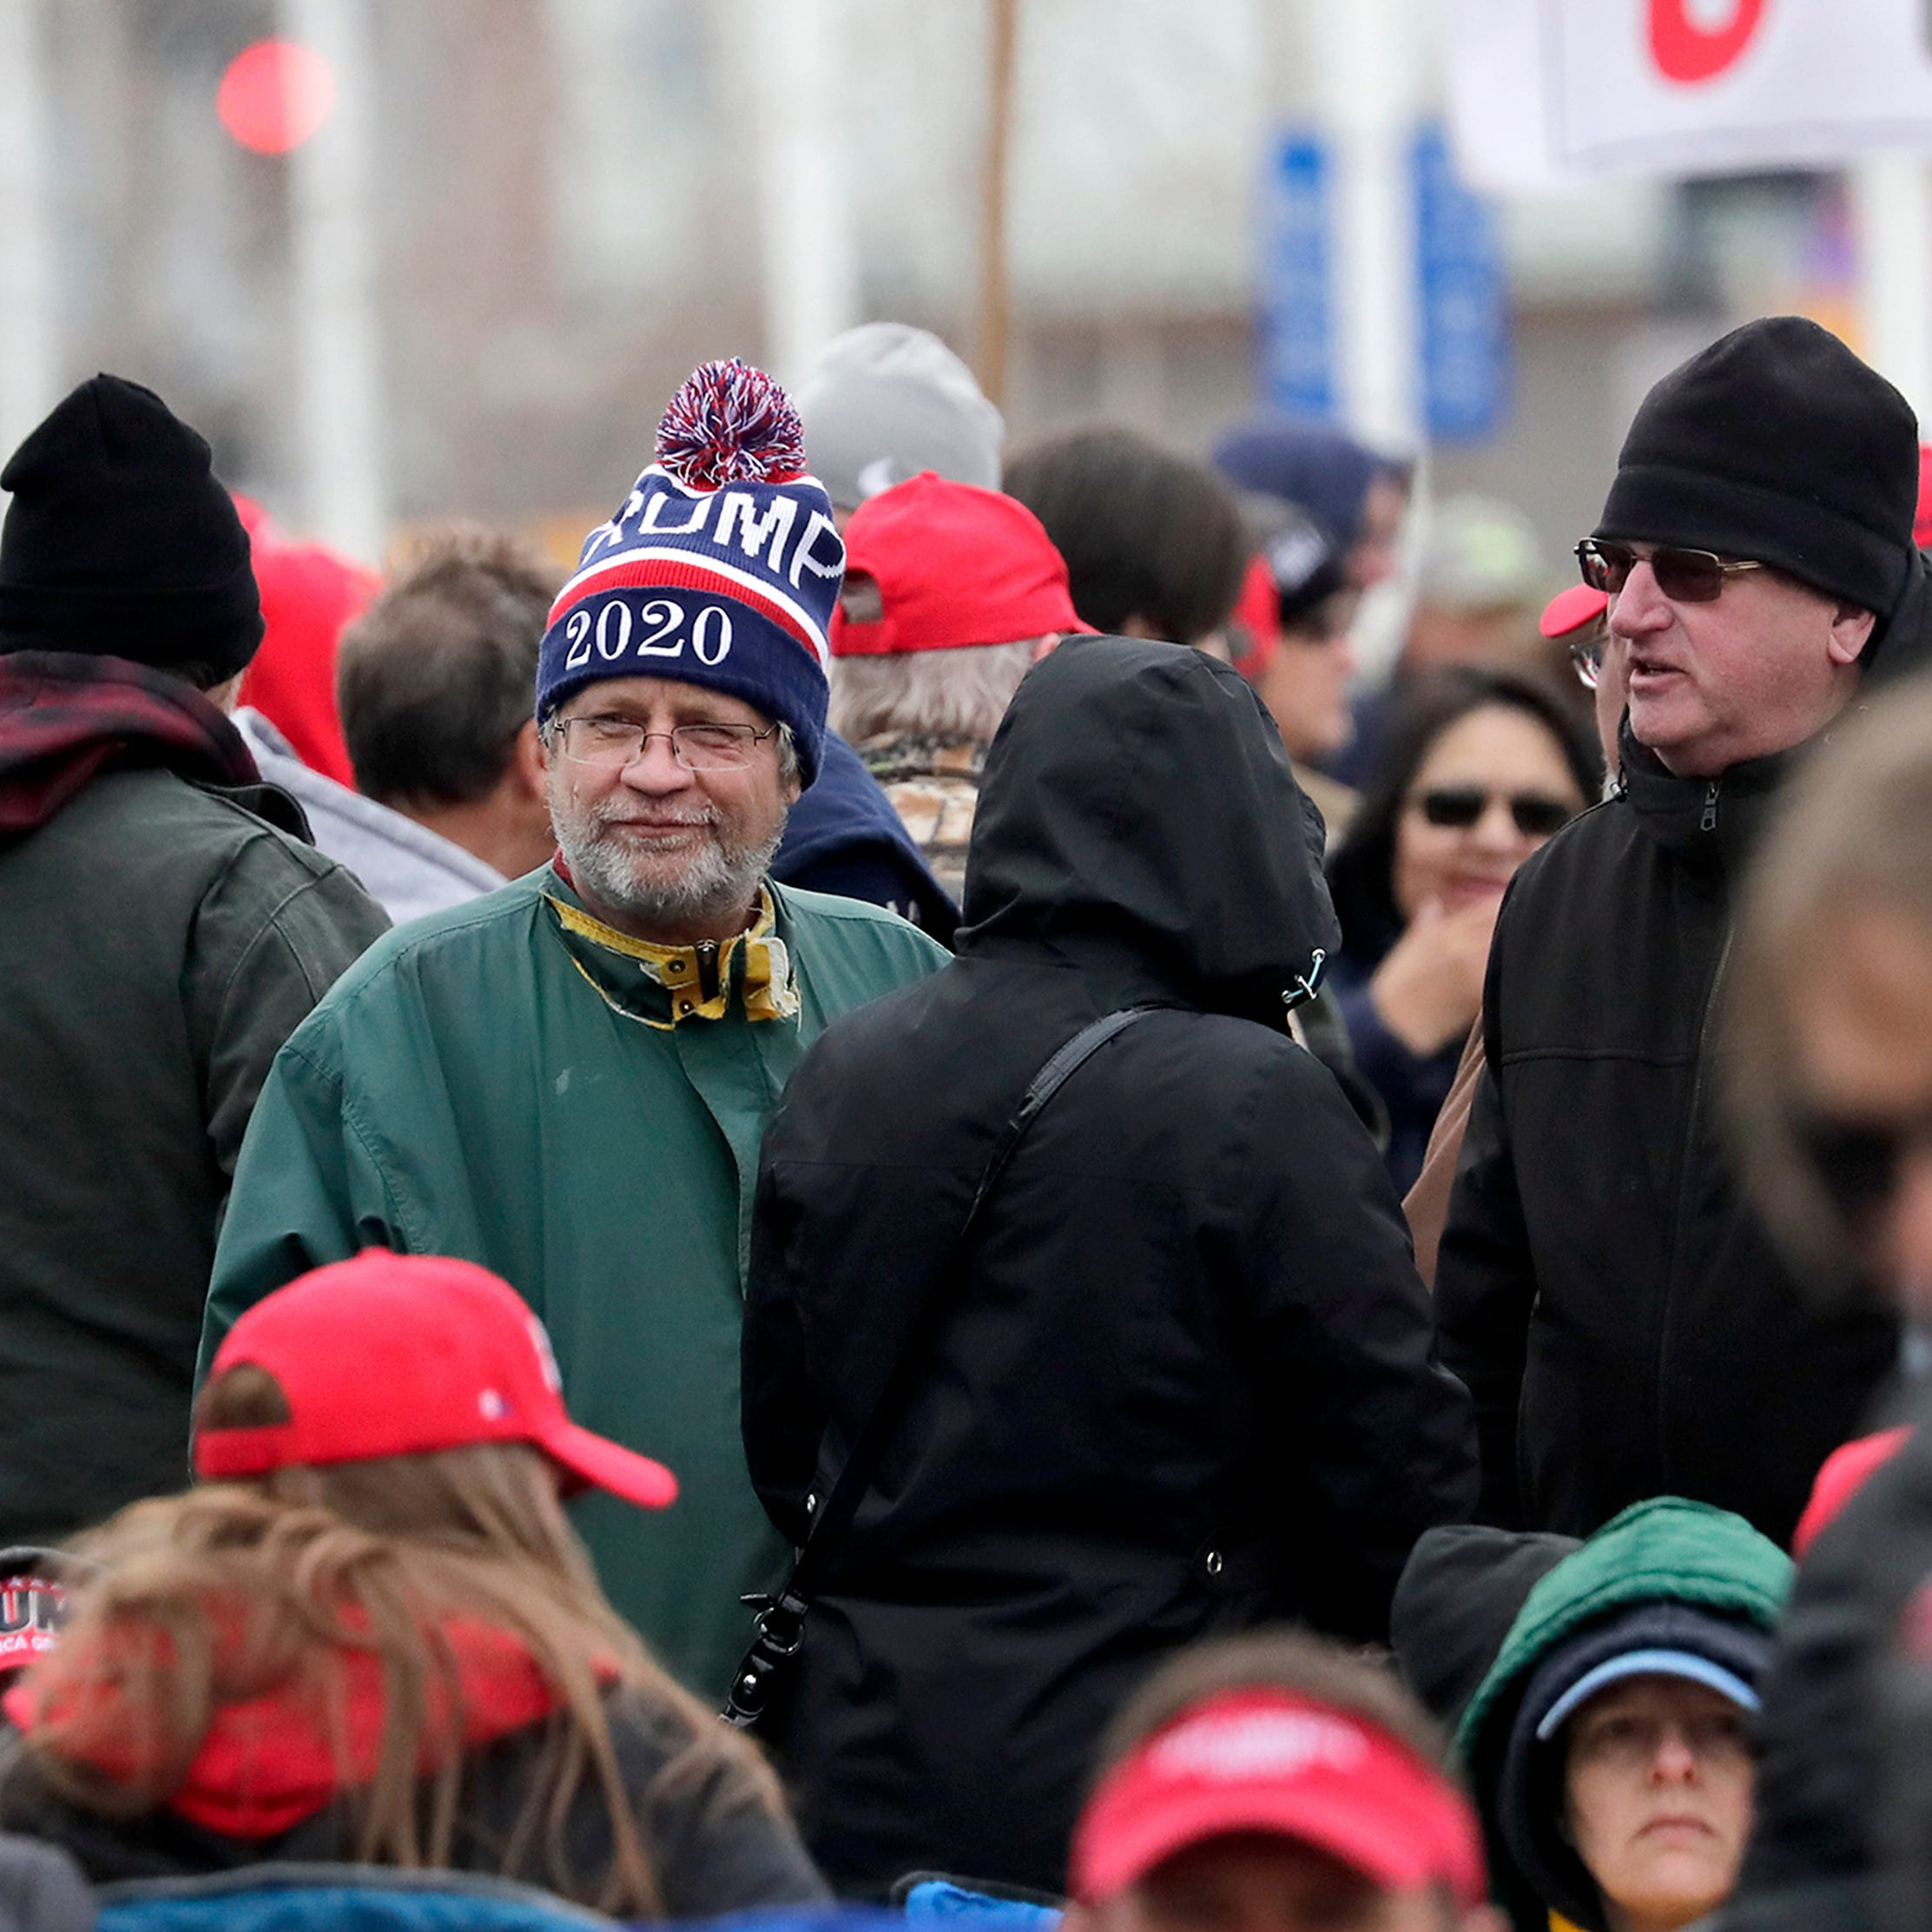 Donald Trump rally in Brown County: Scenes from outside the Resch Center